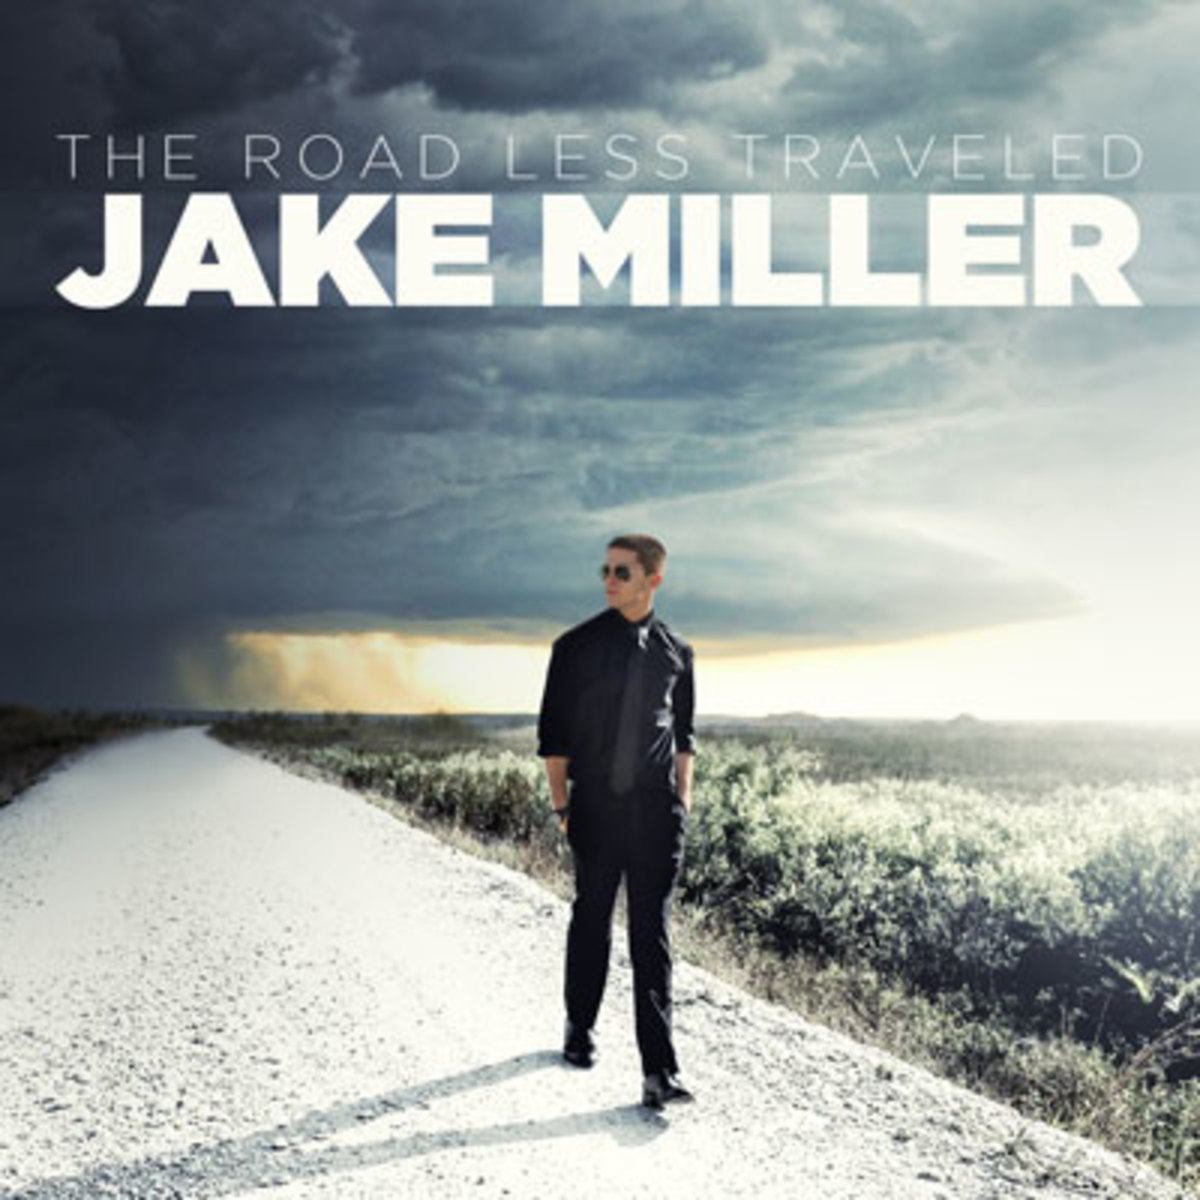 jakemiller-theroadlesstraveled.jpg